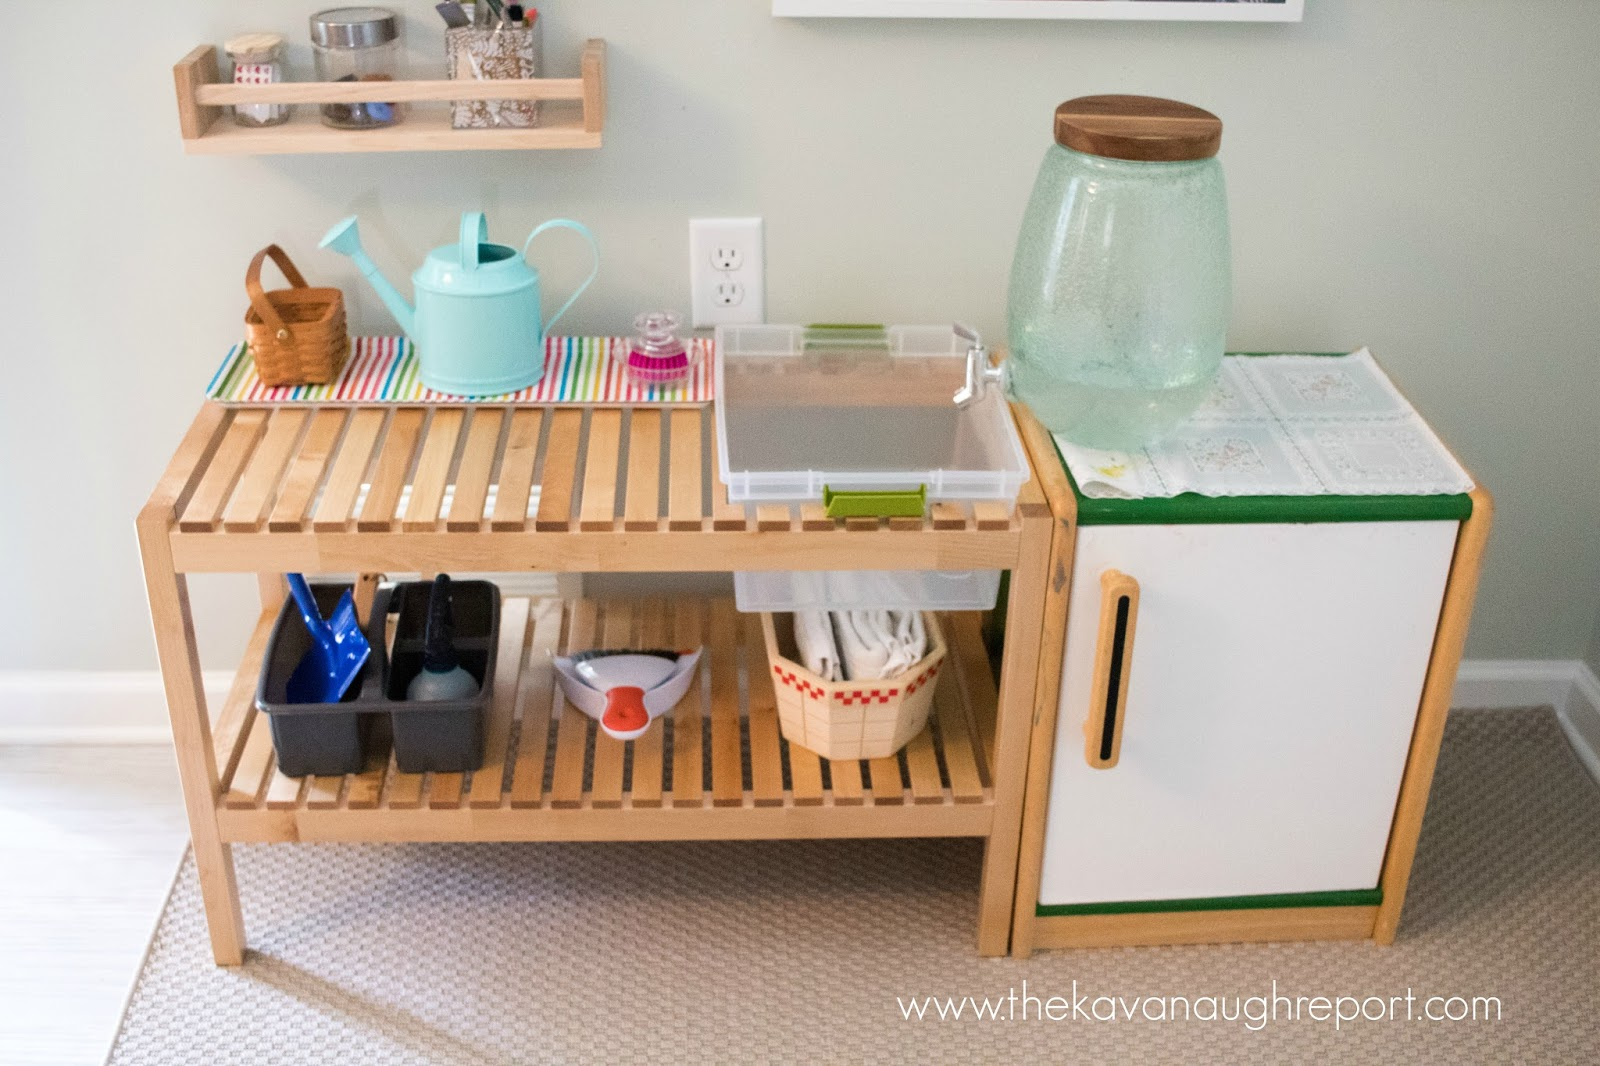 Diy Ikea diy ikea hack wash basin